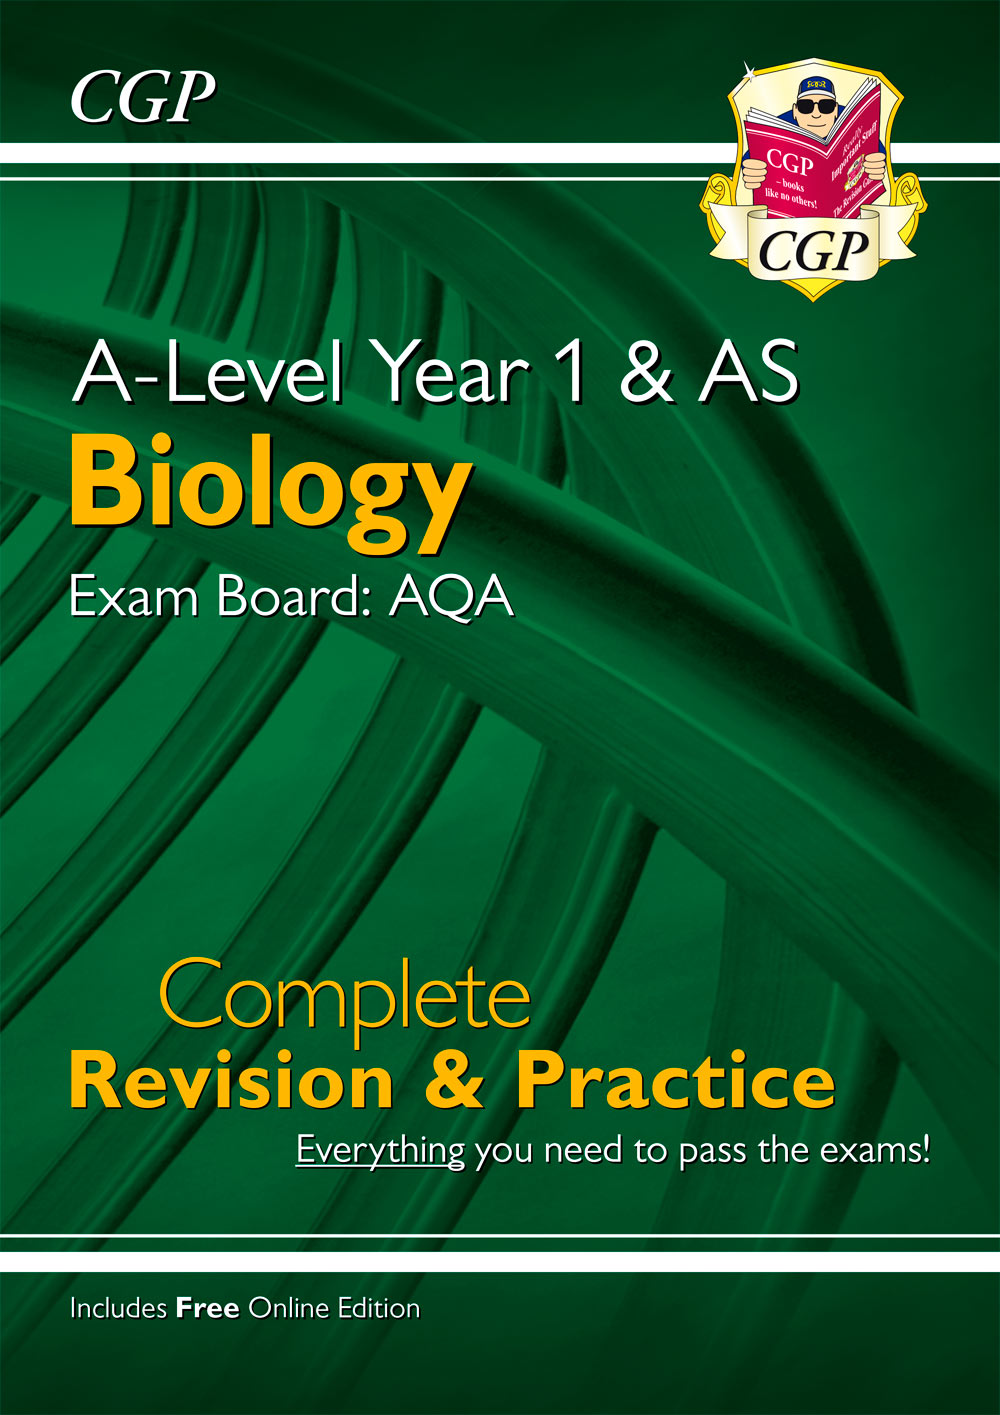 BAR54 - New A-Level Biology for 2018: AQA Year 1 & AS Complete Revision & Practice with Online Editi